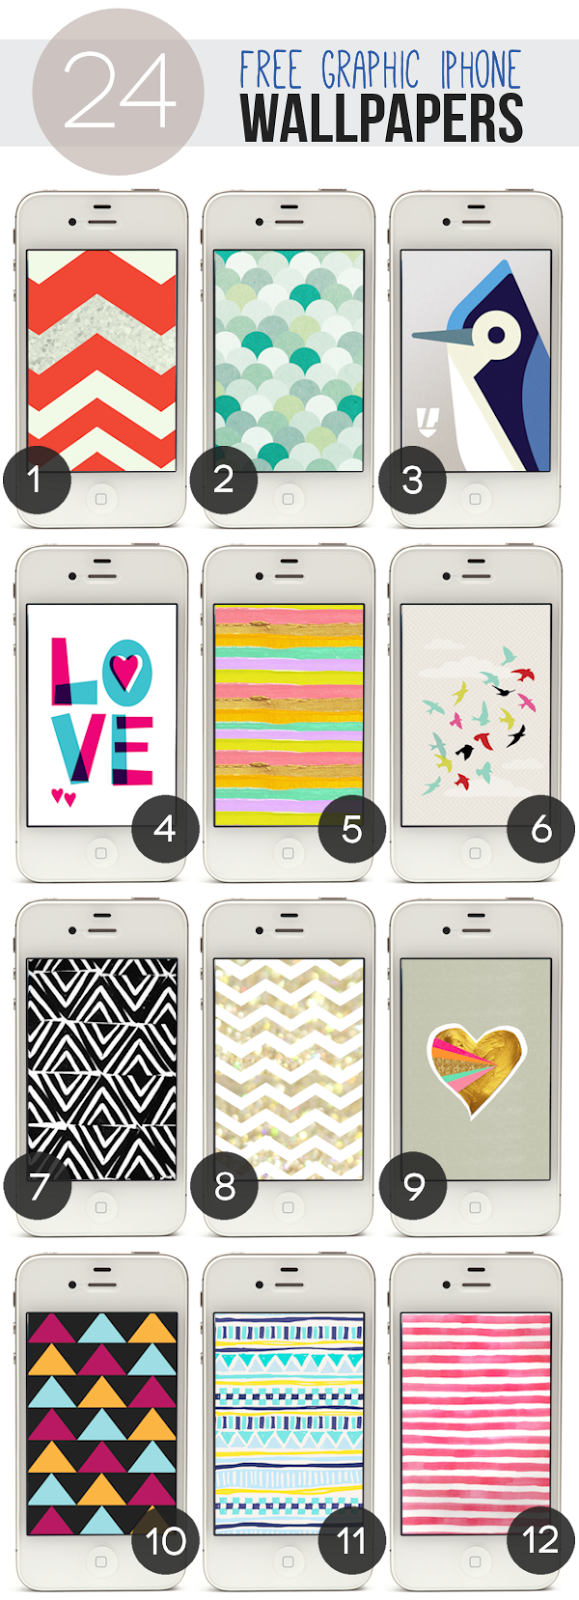 24 Free Graphic iPhone Wallpapers - Lines Across